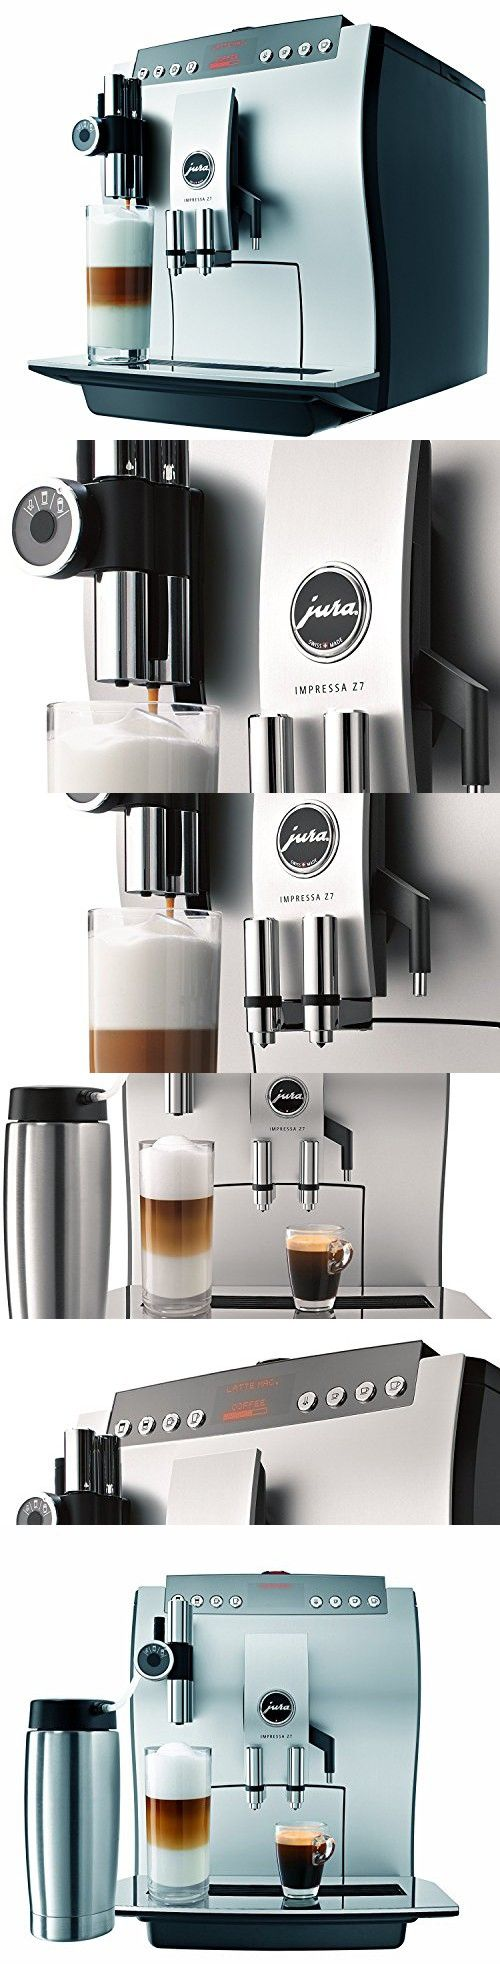 Jura Impressa Z7 Automatic Coffee Center